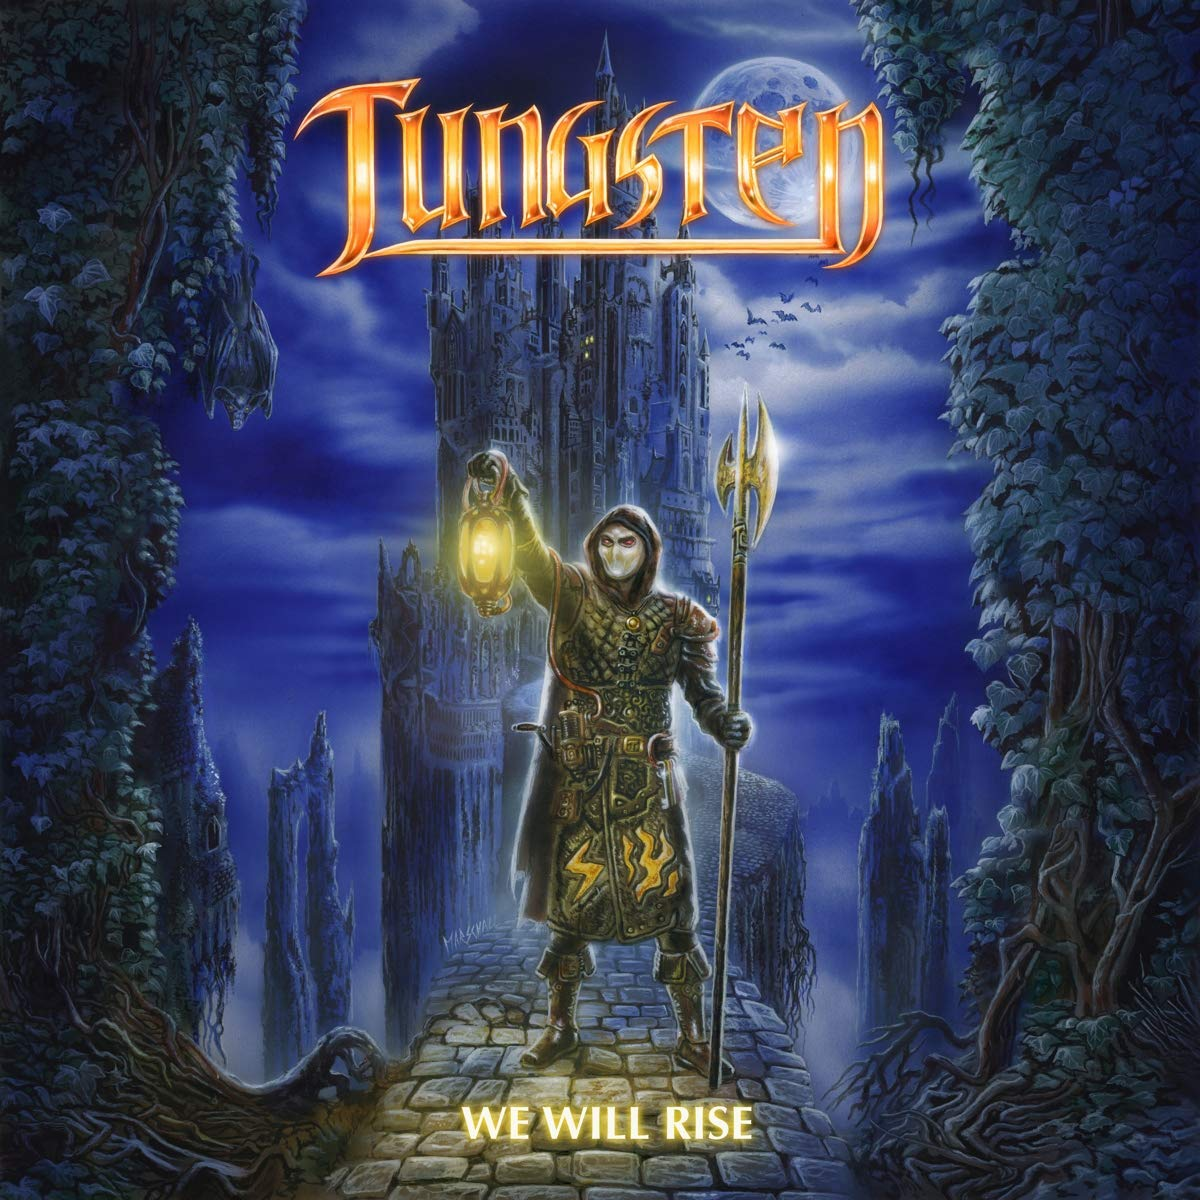 Tungsten-The Will Rise-(27361 50242)-CD-FLAC-2019-WRE